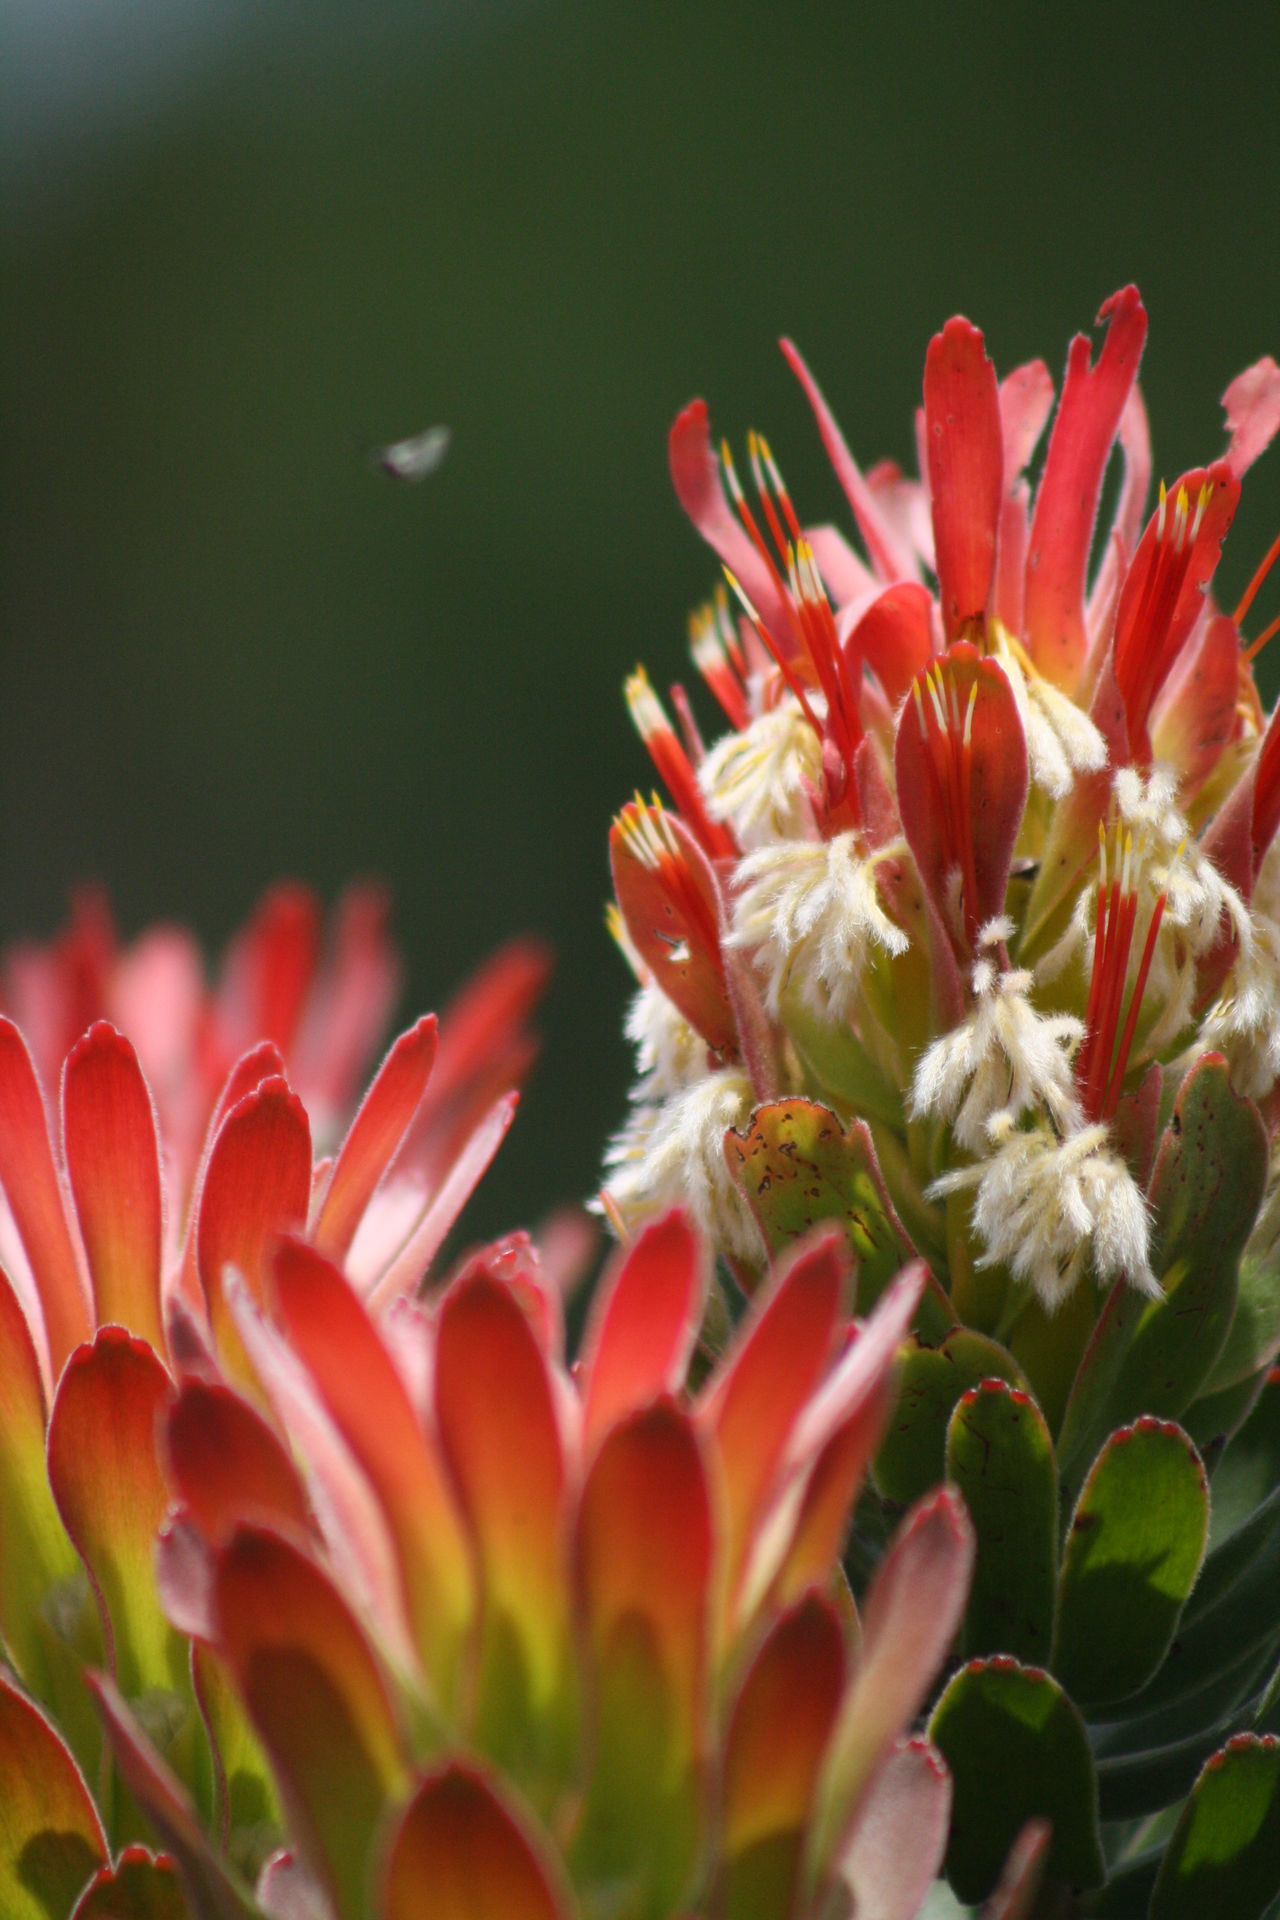 Plants Botany Red Cape Town Kirstenbosch Garden Botanical Macro Photography Nophotoshop Gradient Believe Flowering Exotic Original Maximum Closeness